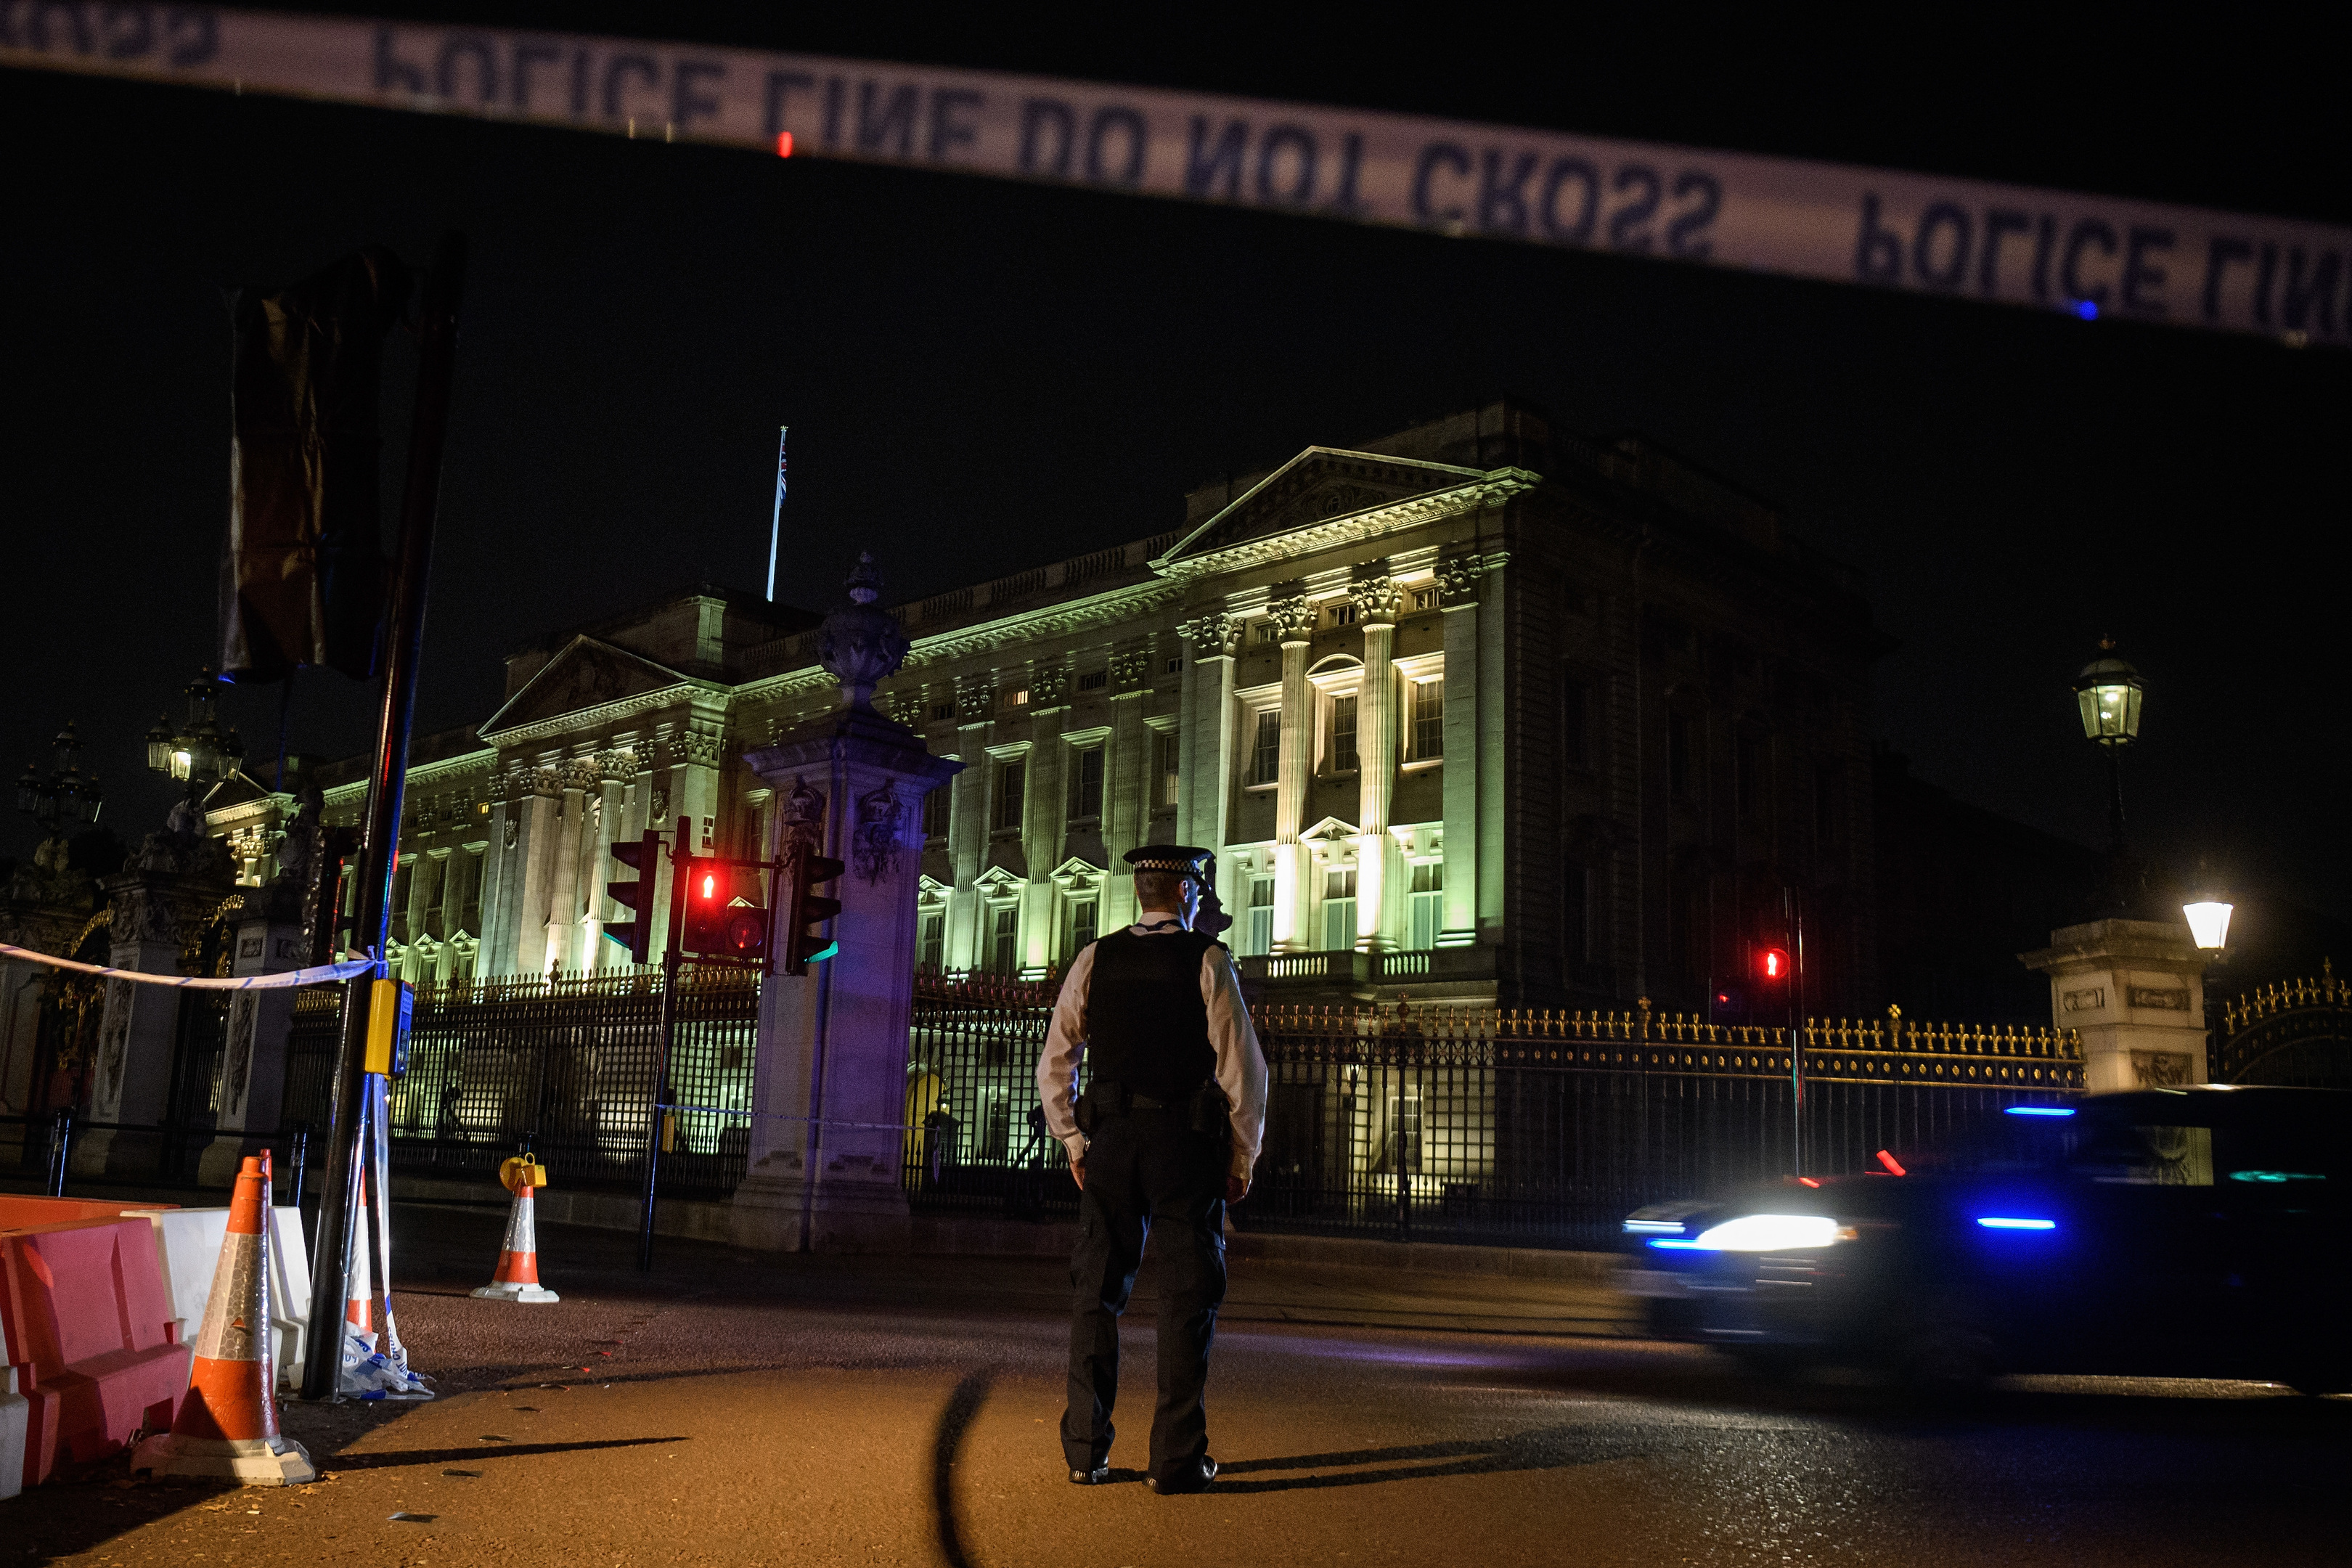 Police teams secure the roads behind a cordoned area following an attack on two police officers at Buckingham Palace (Leon Neal/Getty Images)